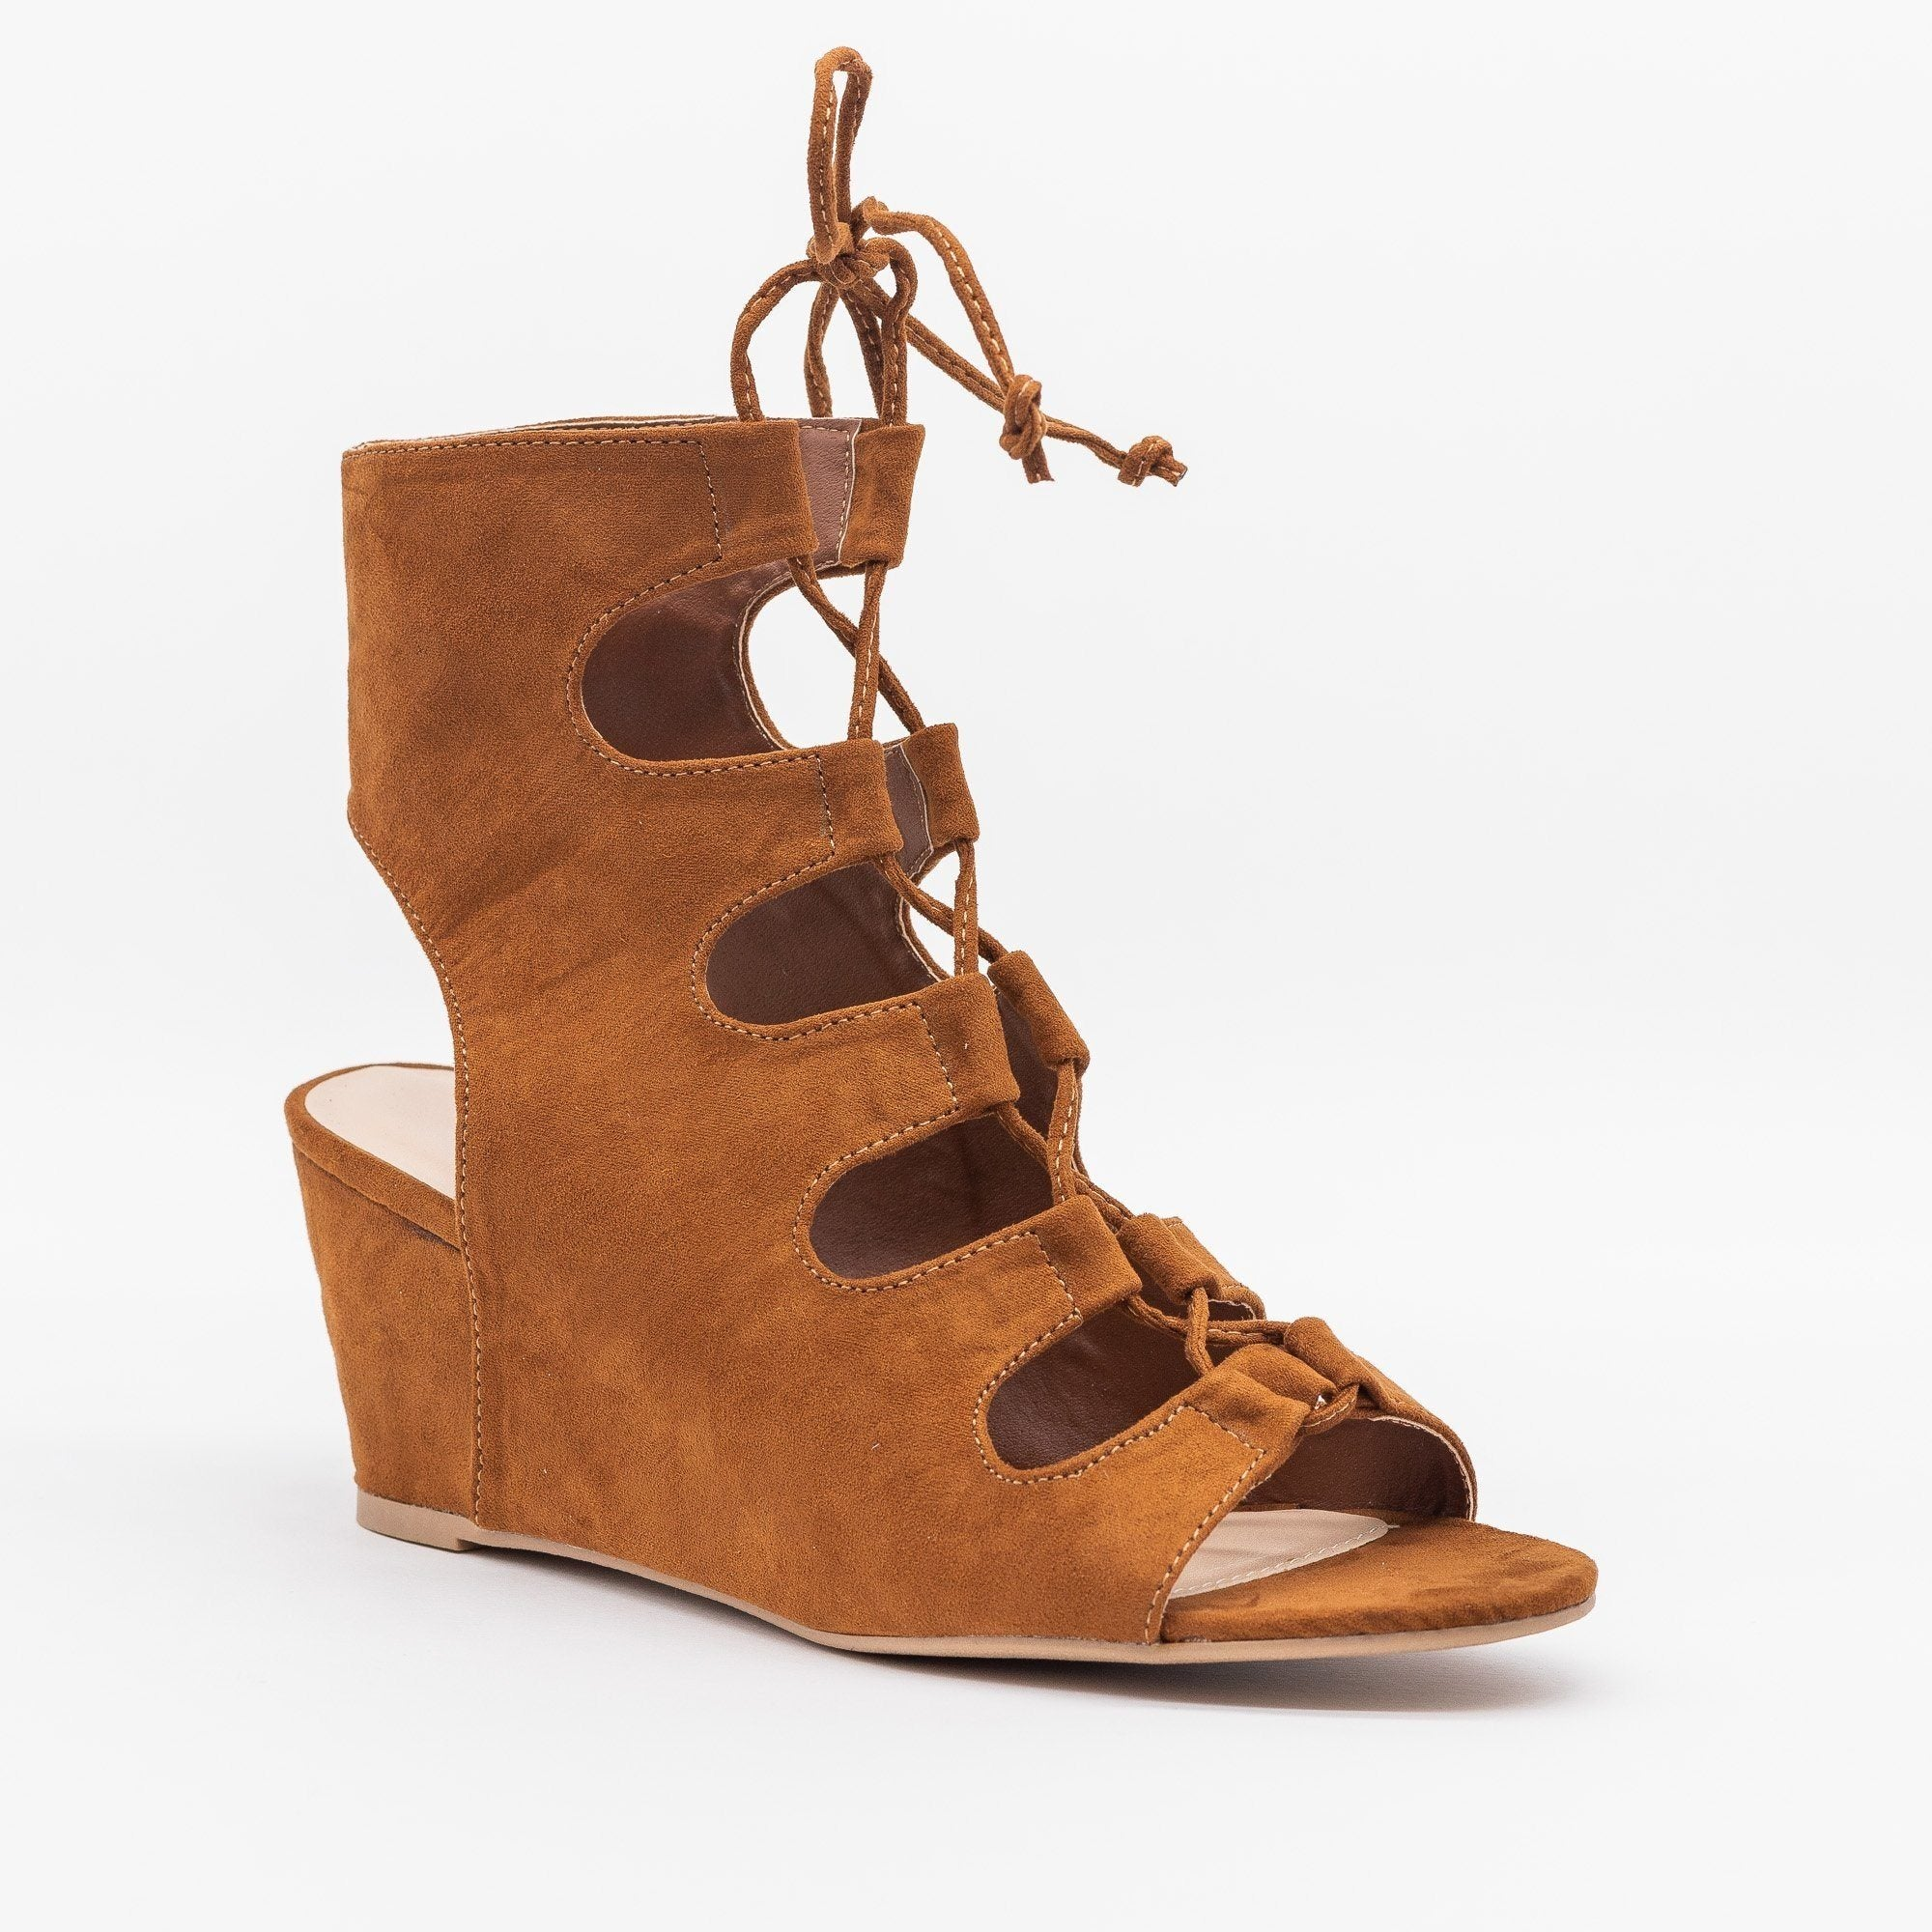 Lace-Up Sandal Wedges - Qupid Shoes